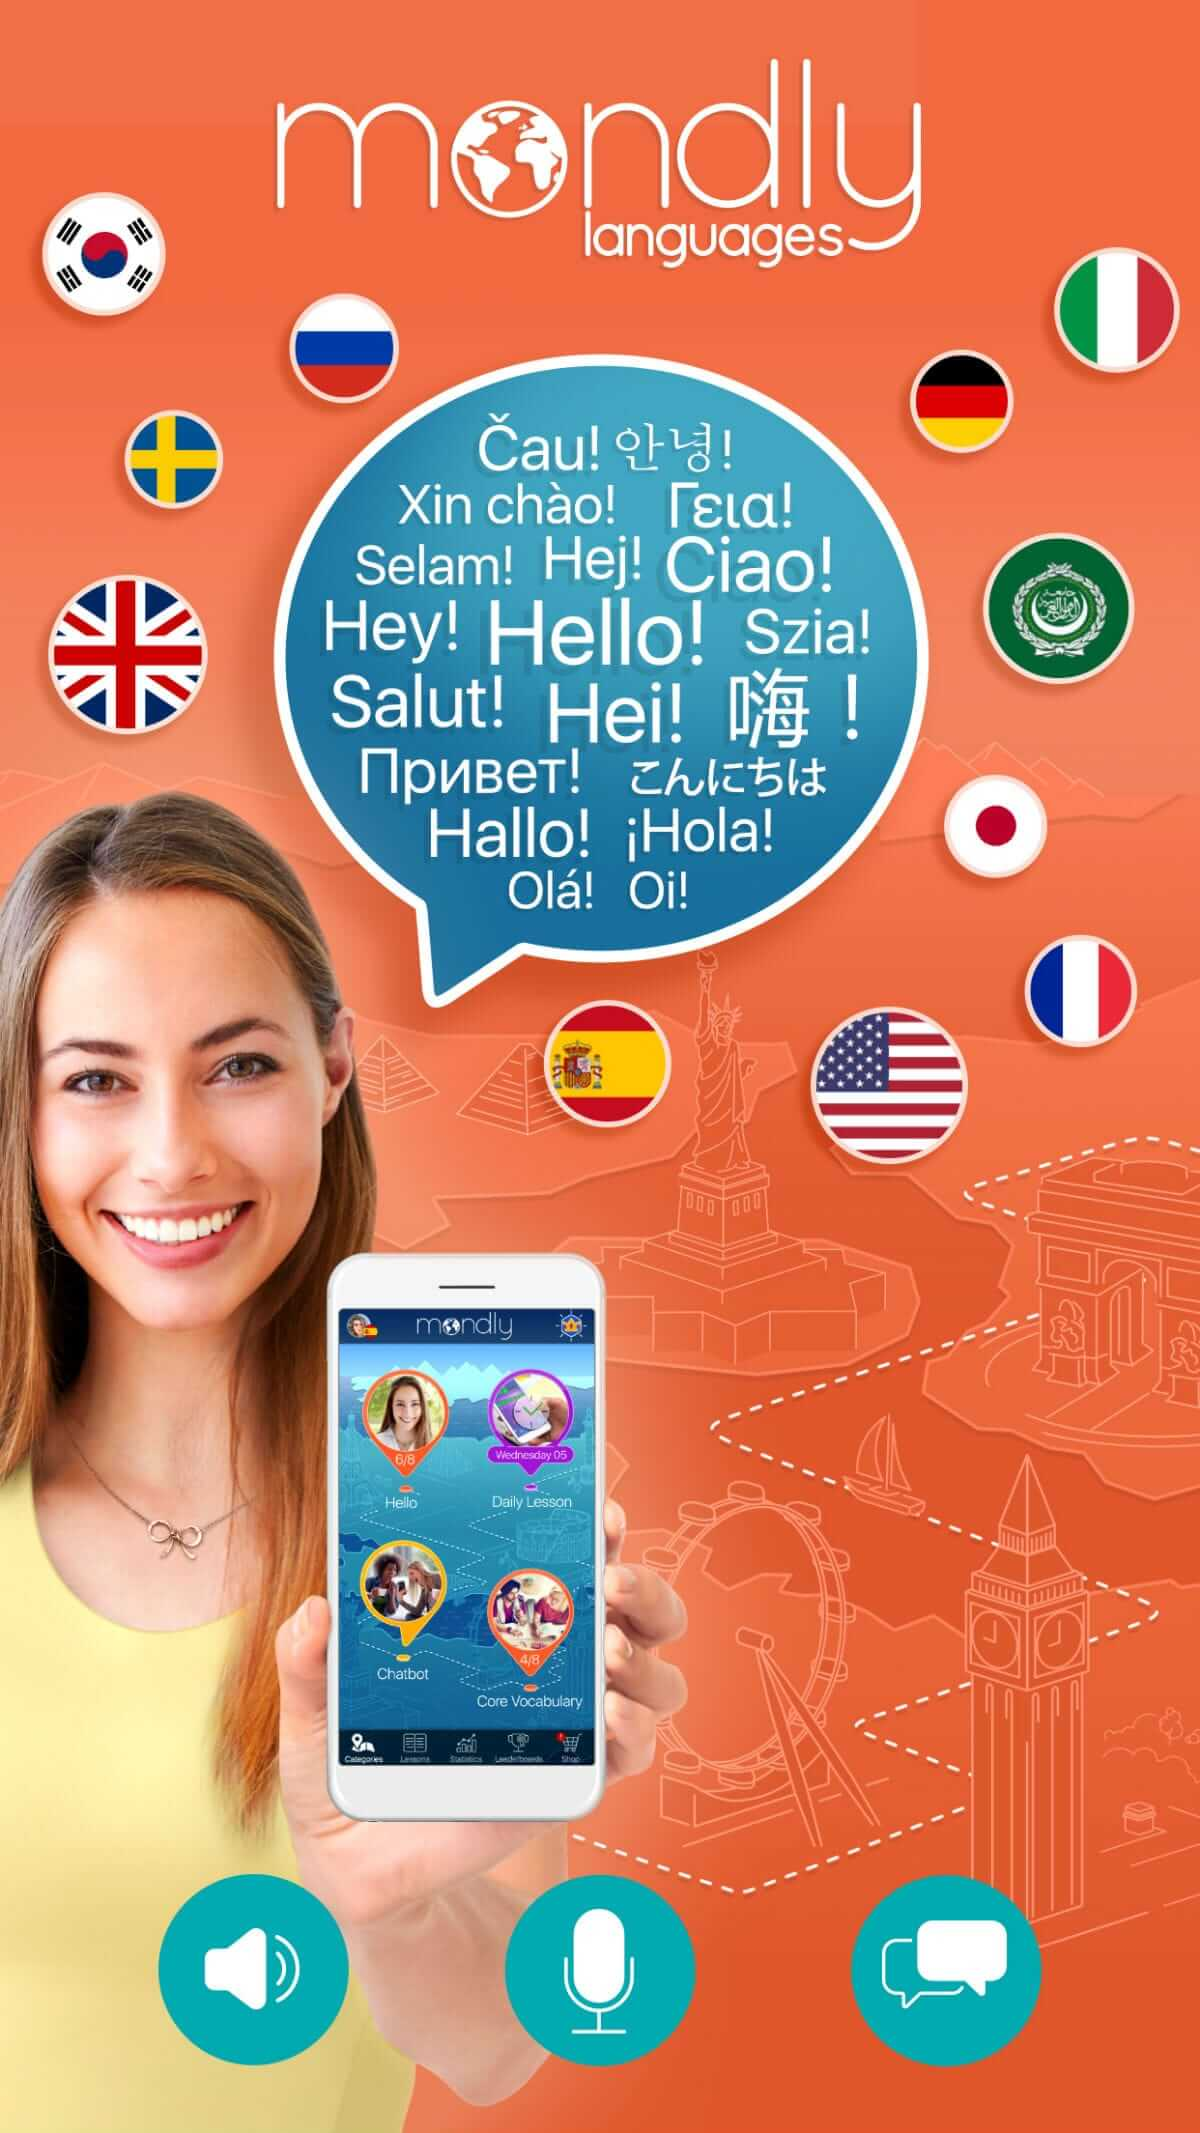 Image showing Mondly's language learning app